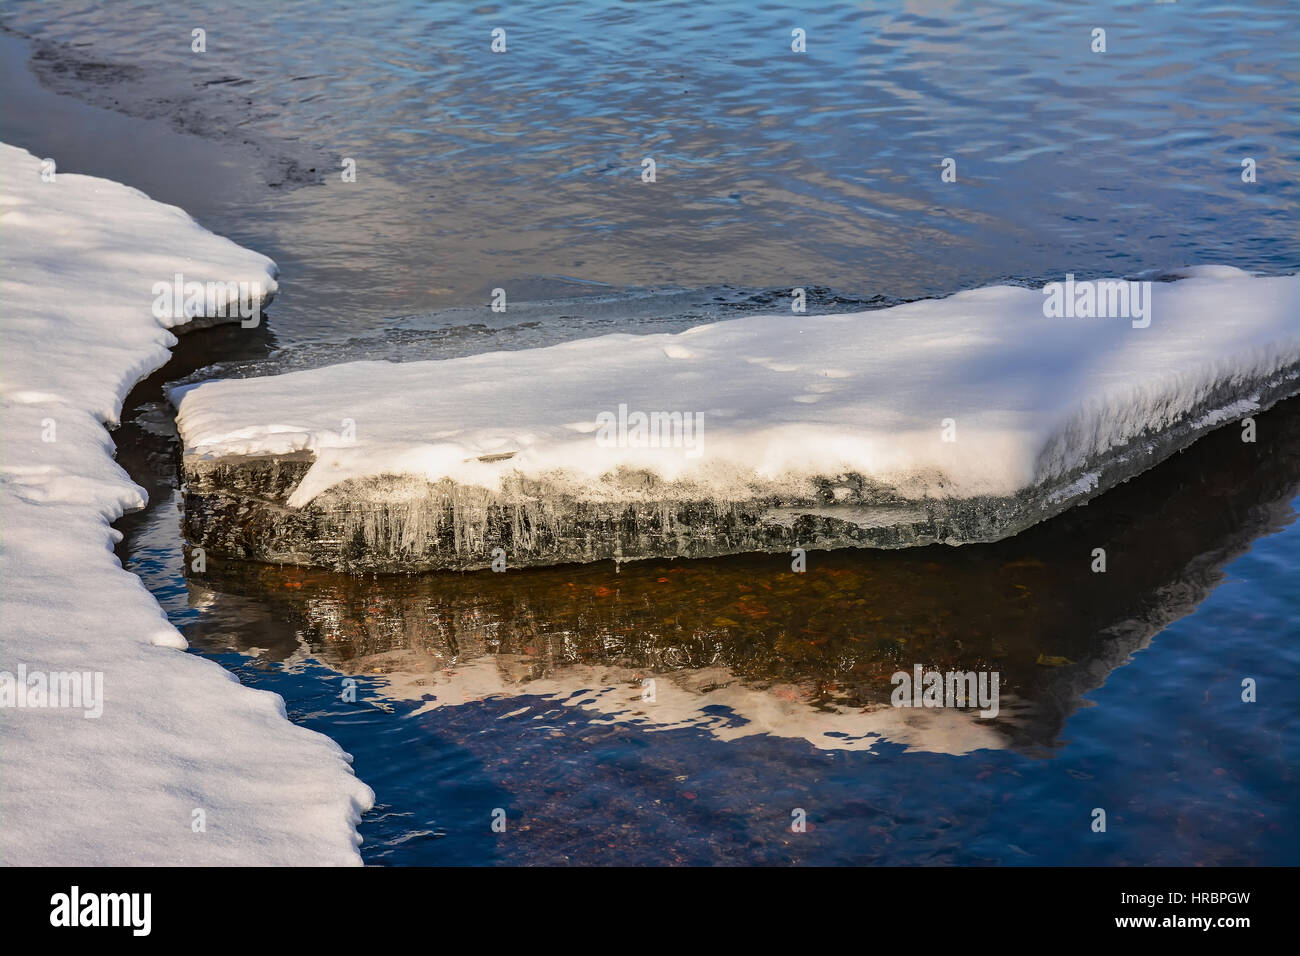 The reflection of the sky in cold water - Stock Image